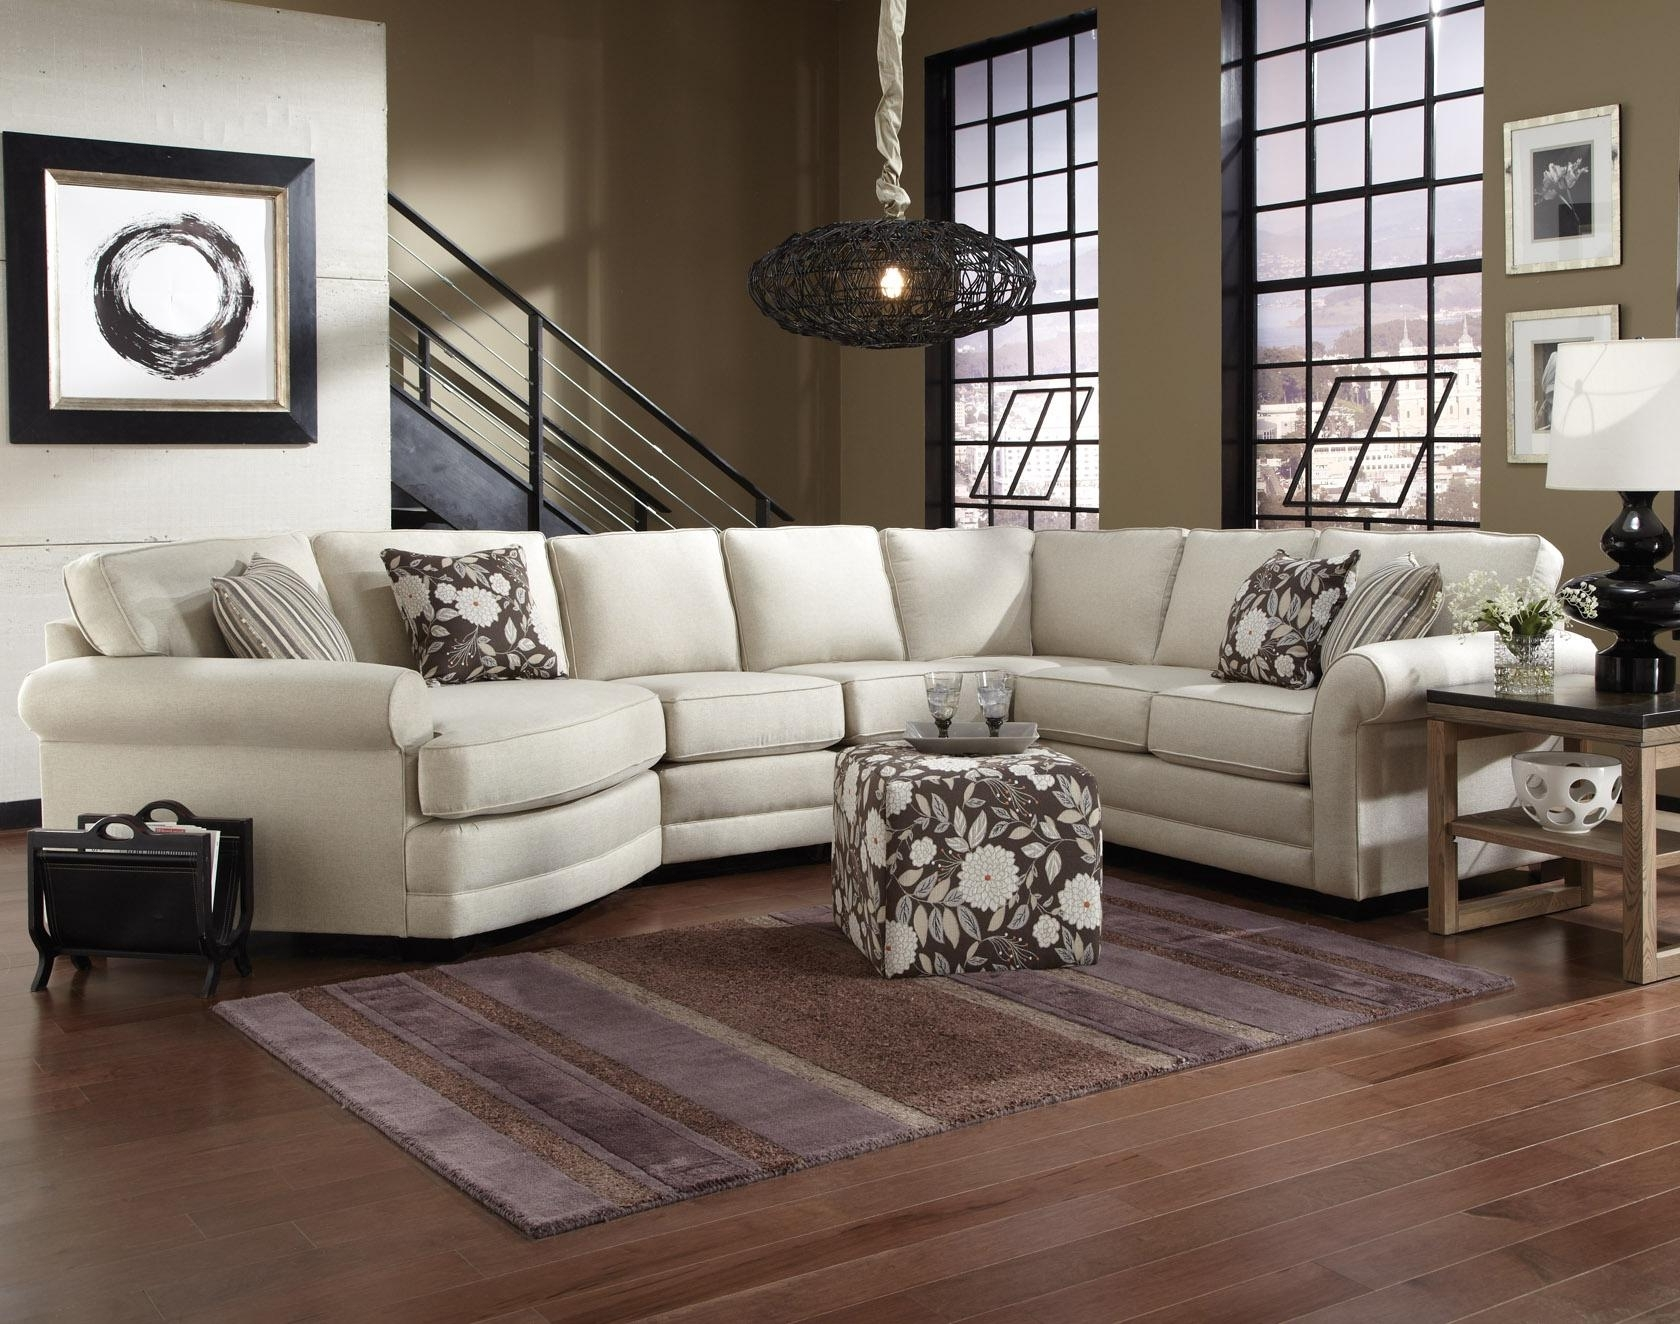 Dunk Throughout Most Current Sectional Sofas With Cuddler (Gallery 8 of 20)